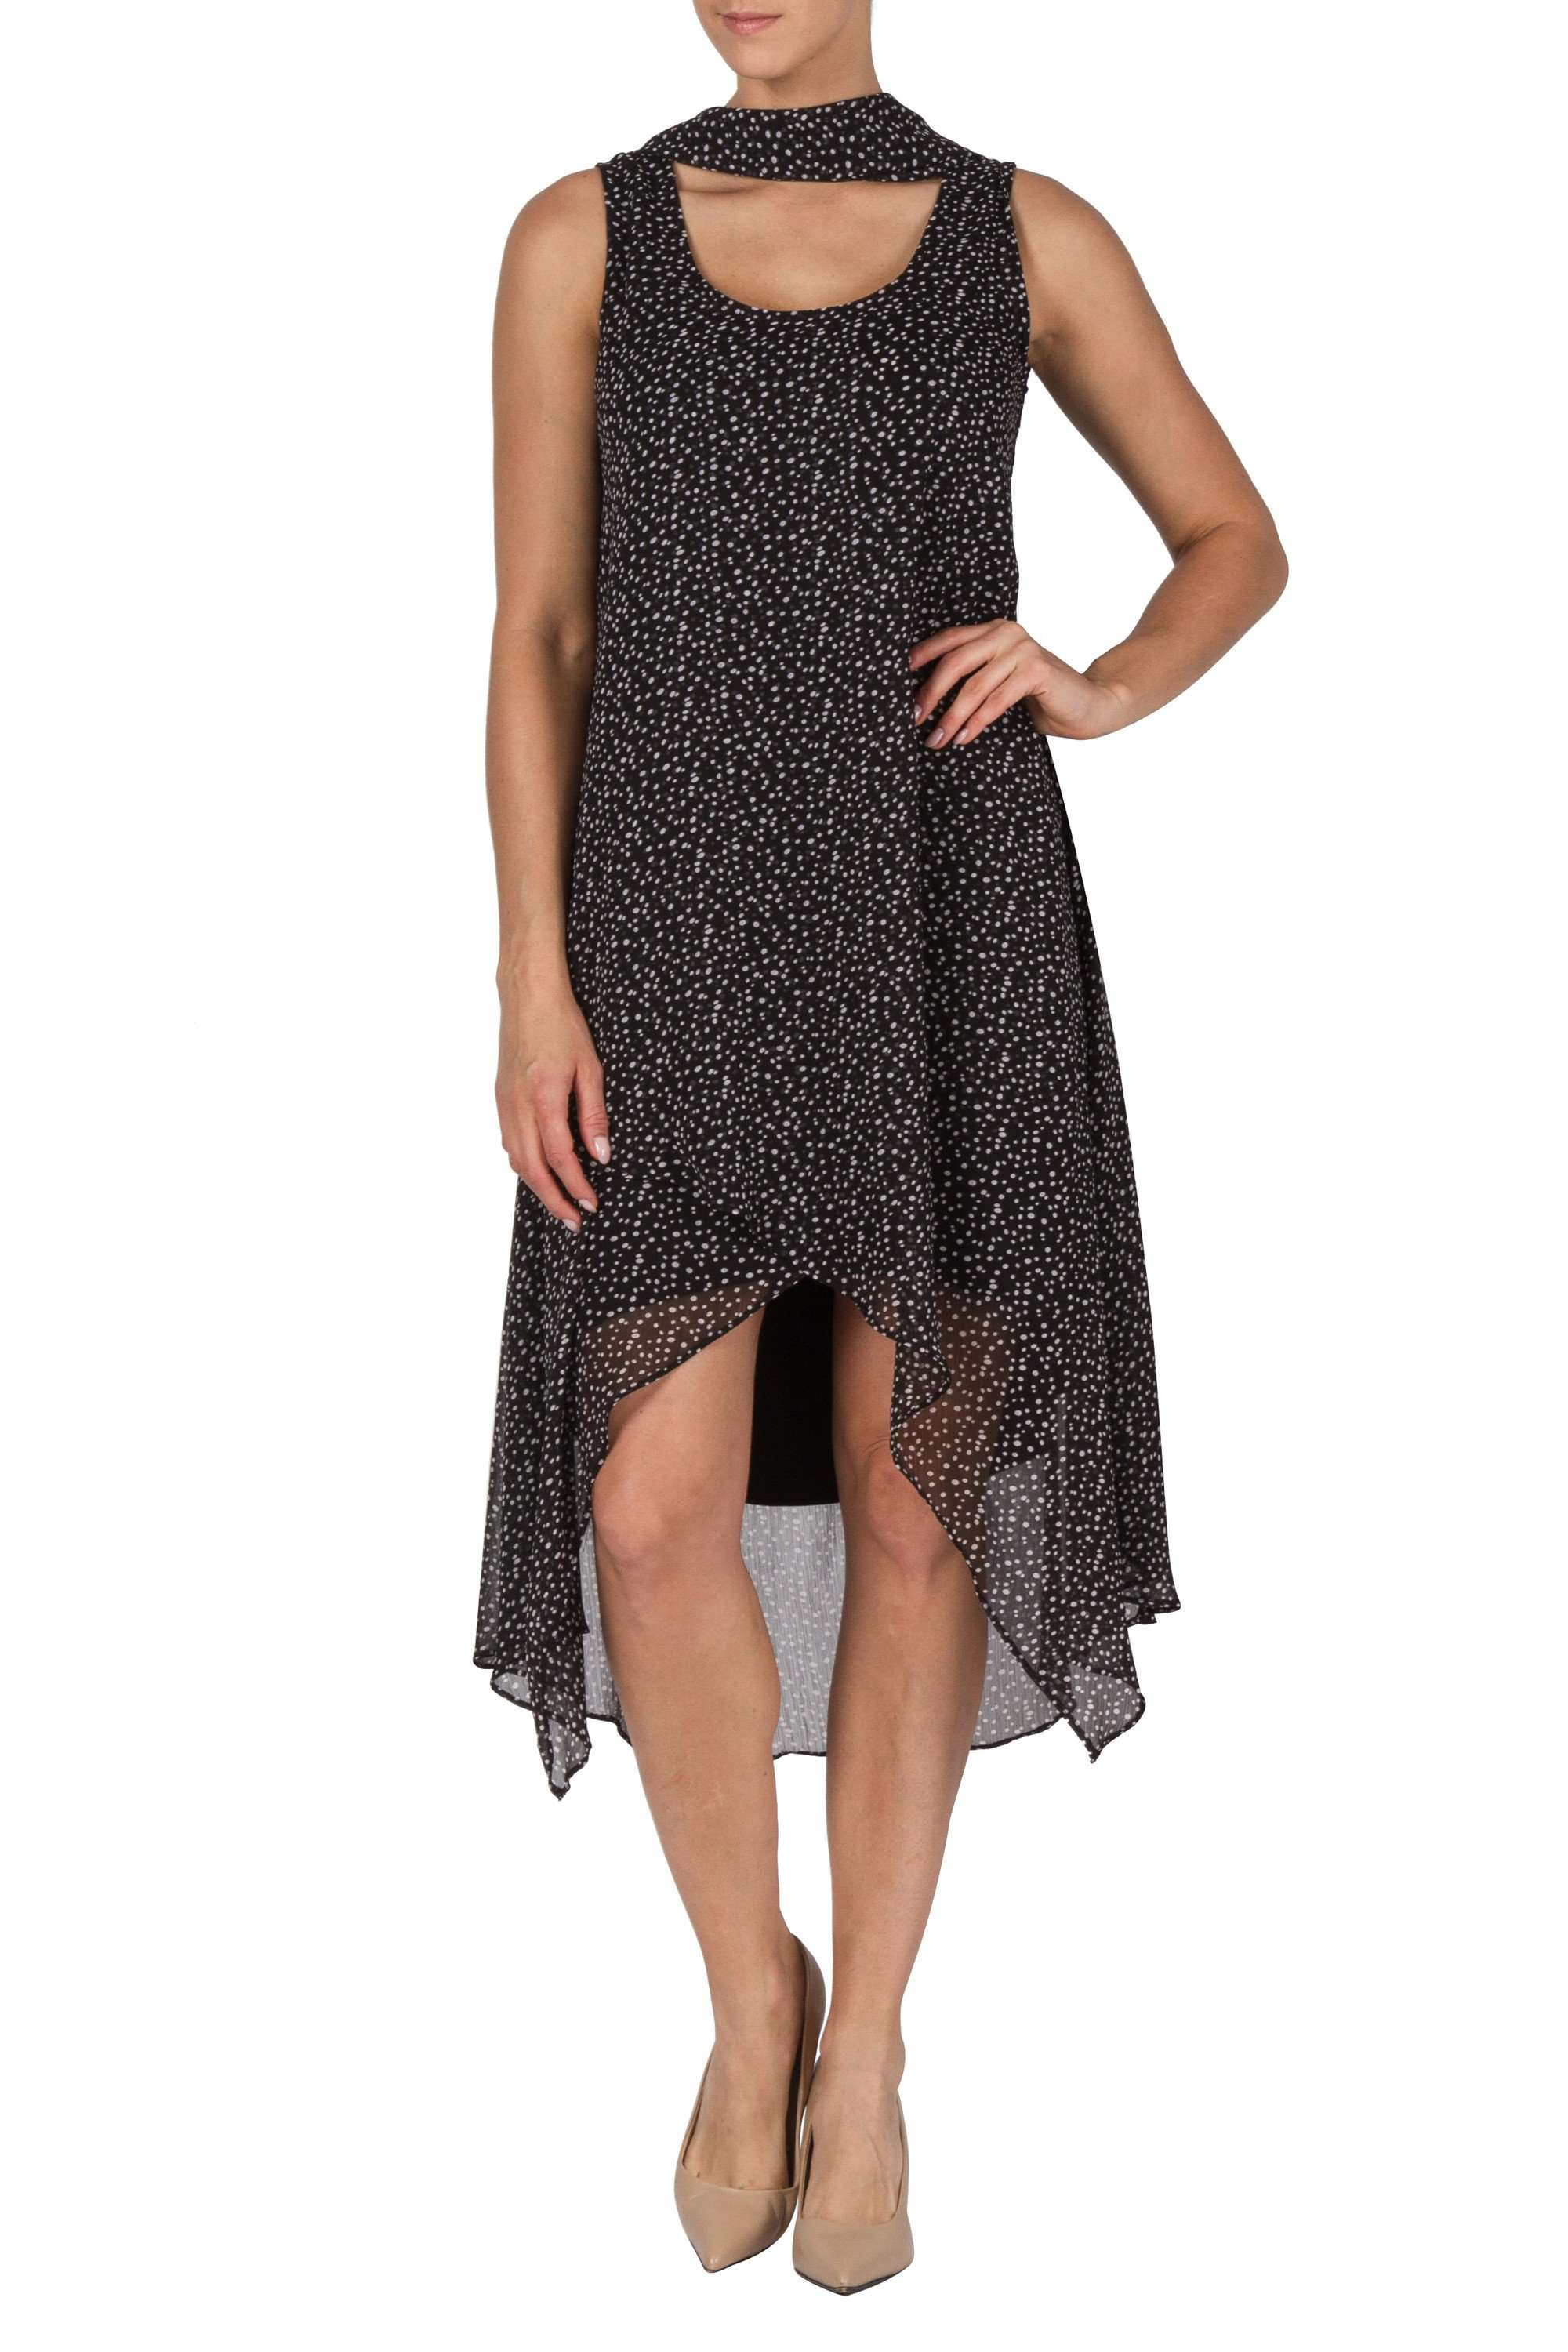 Women's Black Chiffon Dress - Made in Canada - Yvonne Marie - Yvonne Marie